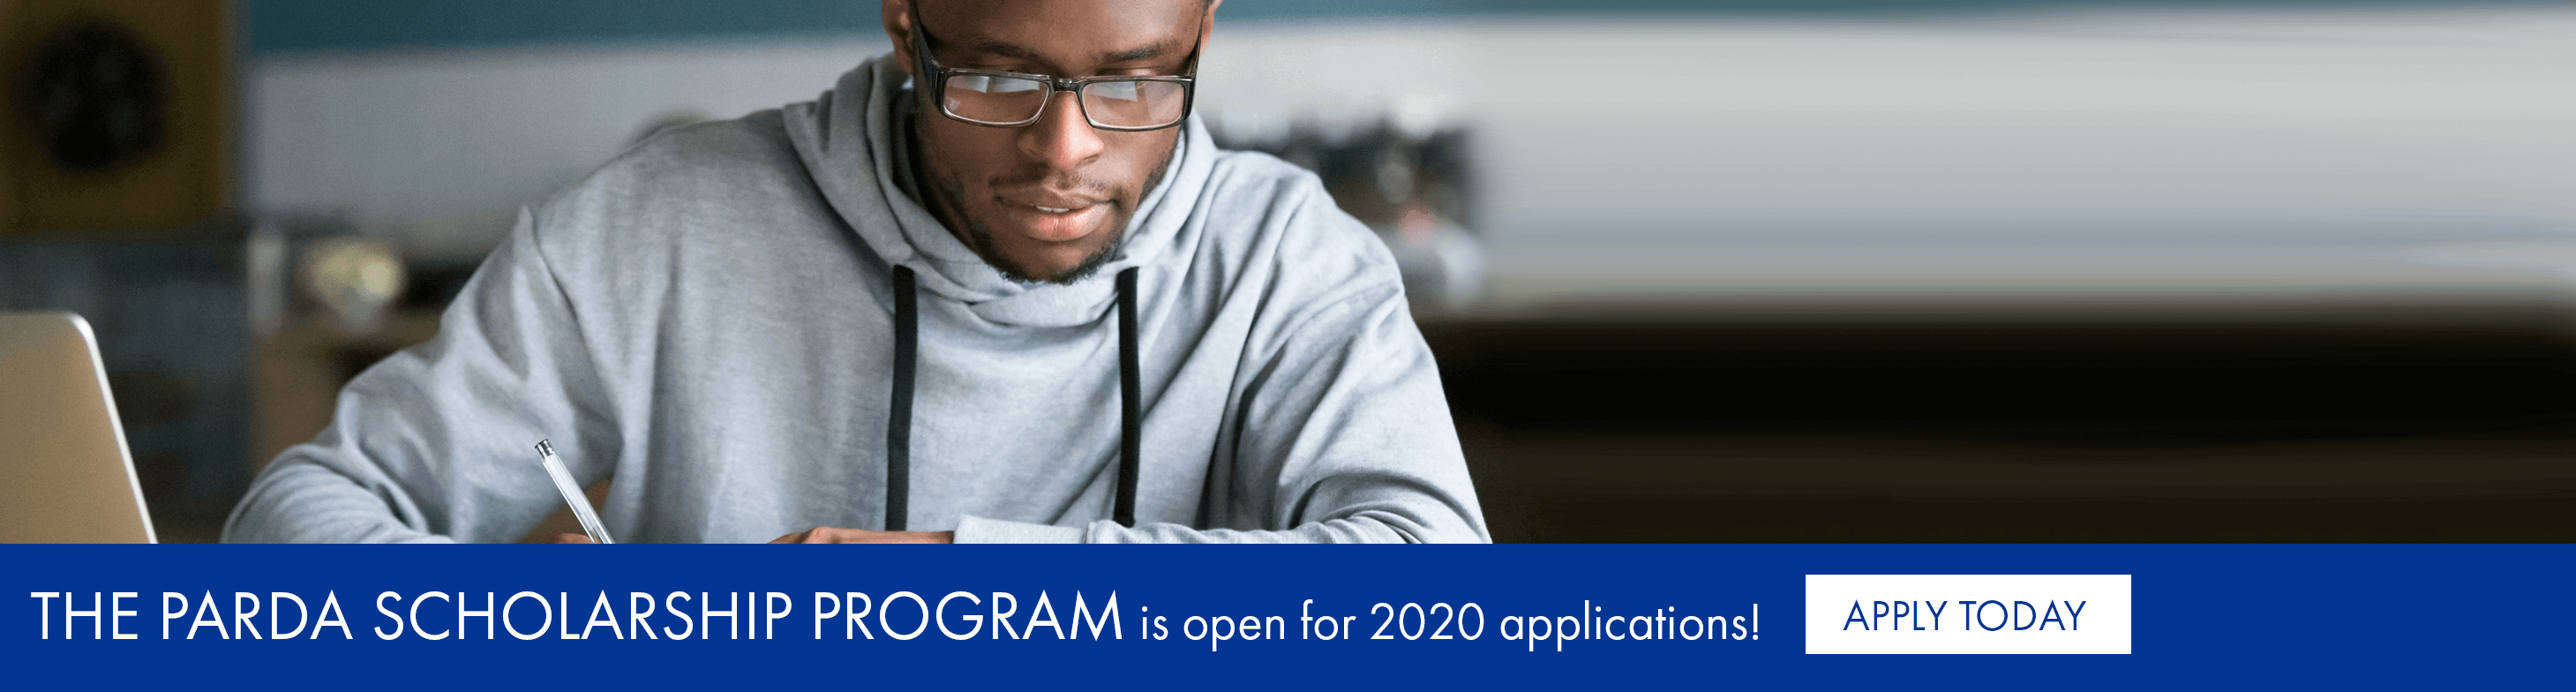 The PARDA scholarship program is open for 2020 applications!